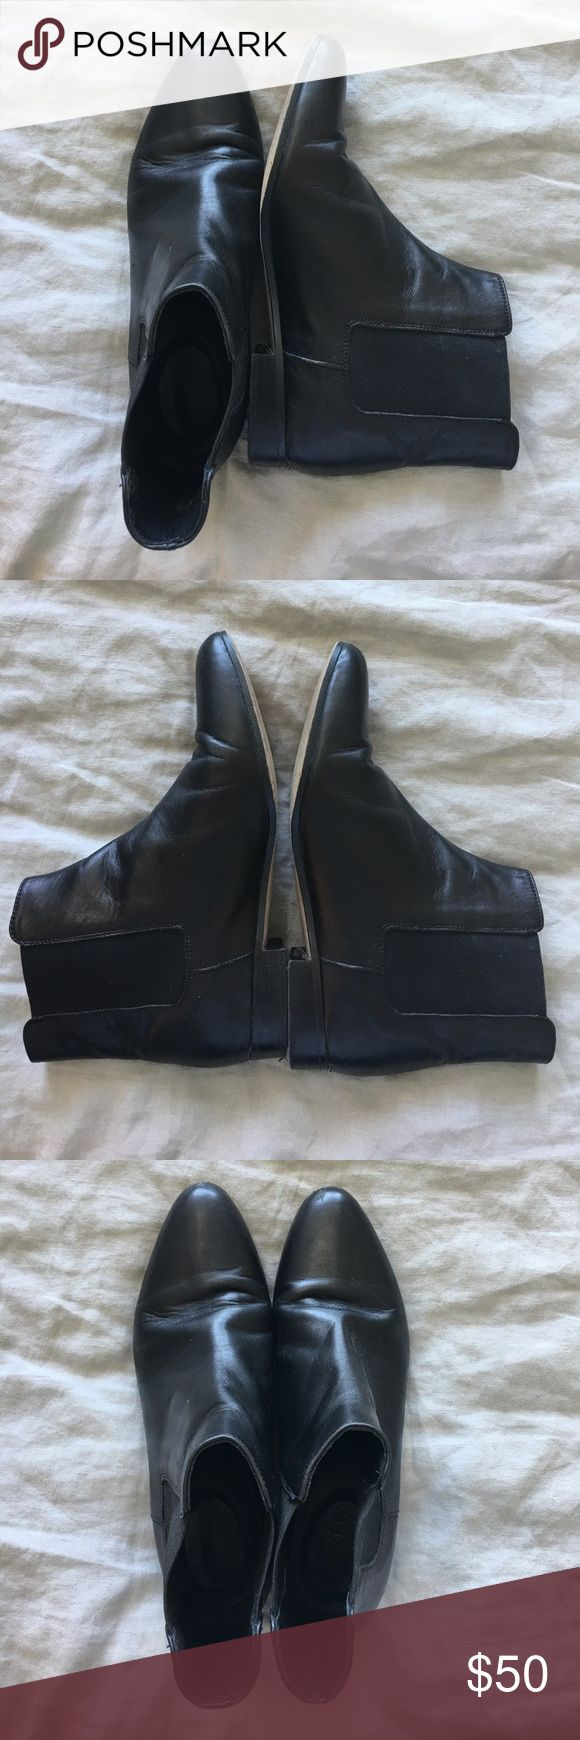 J. Crew black leather chelsea boot Flat heel, slip on chelsea boot. Leather is a little worn for use but they are clean and look great! J. Crew Shoes Ankle Boots & Booties